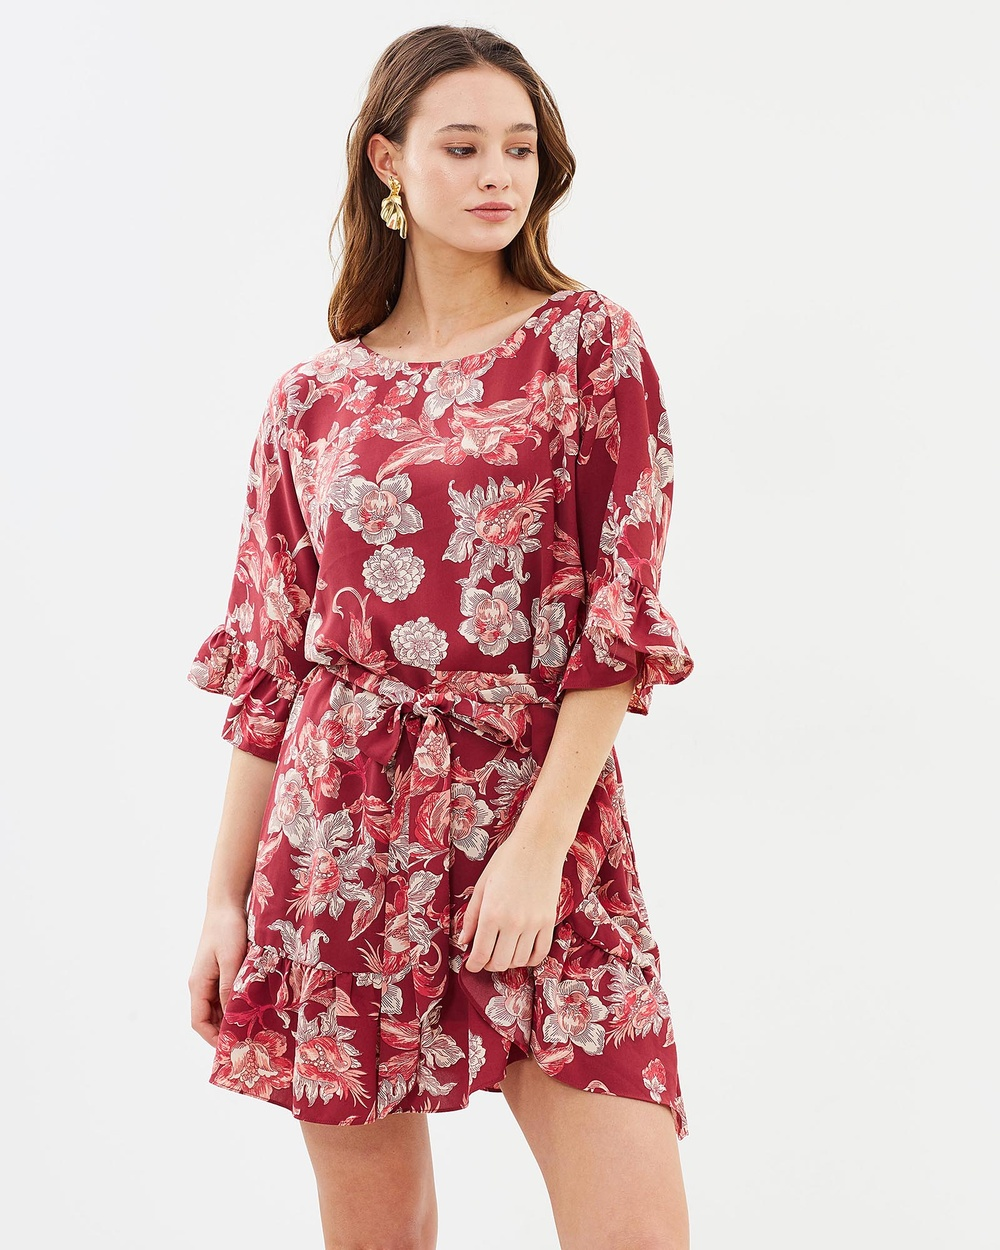 IMONNI Mia Floral Crepe Dress Printed Dresses Floral Mia Floral Crepe Dress